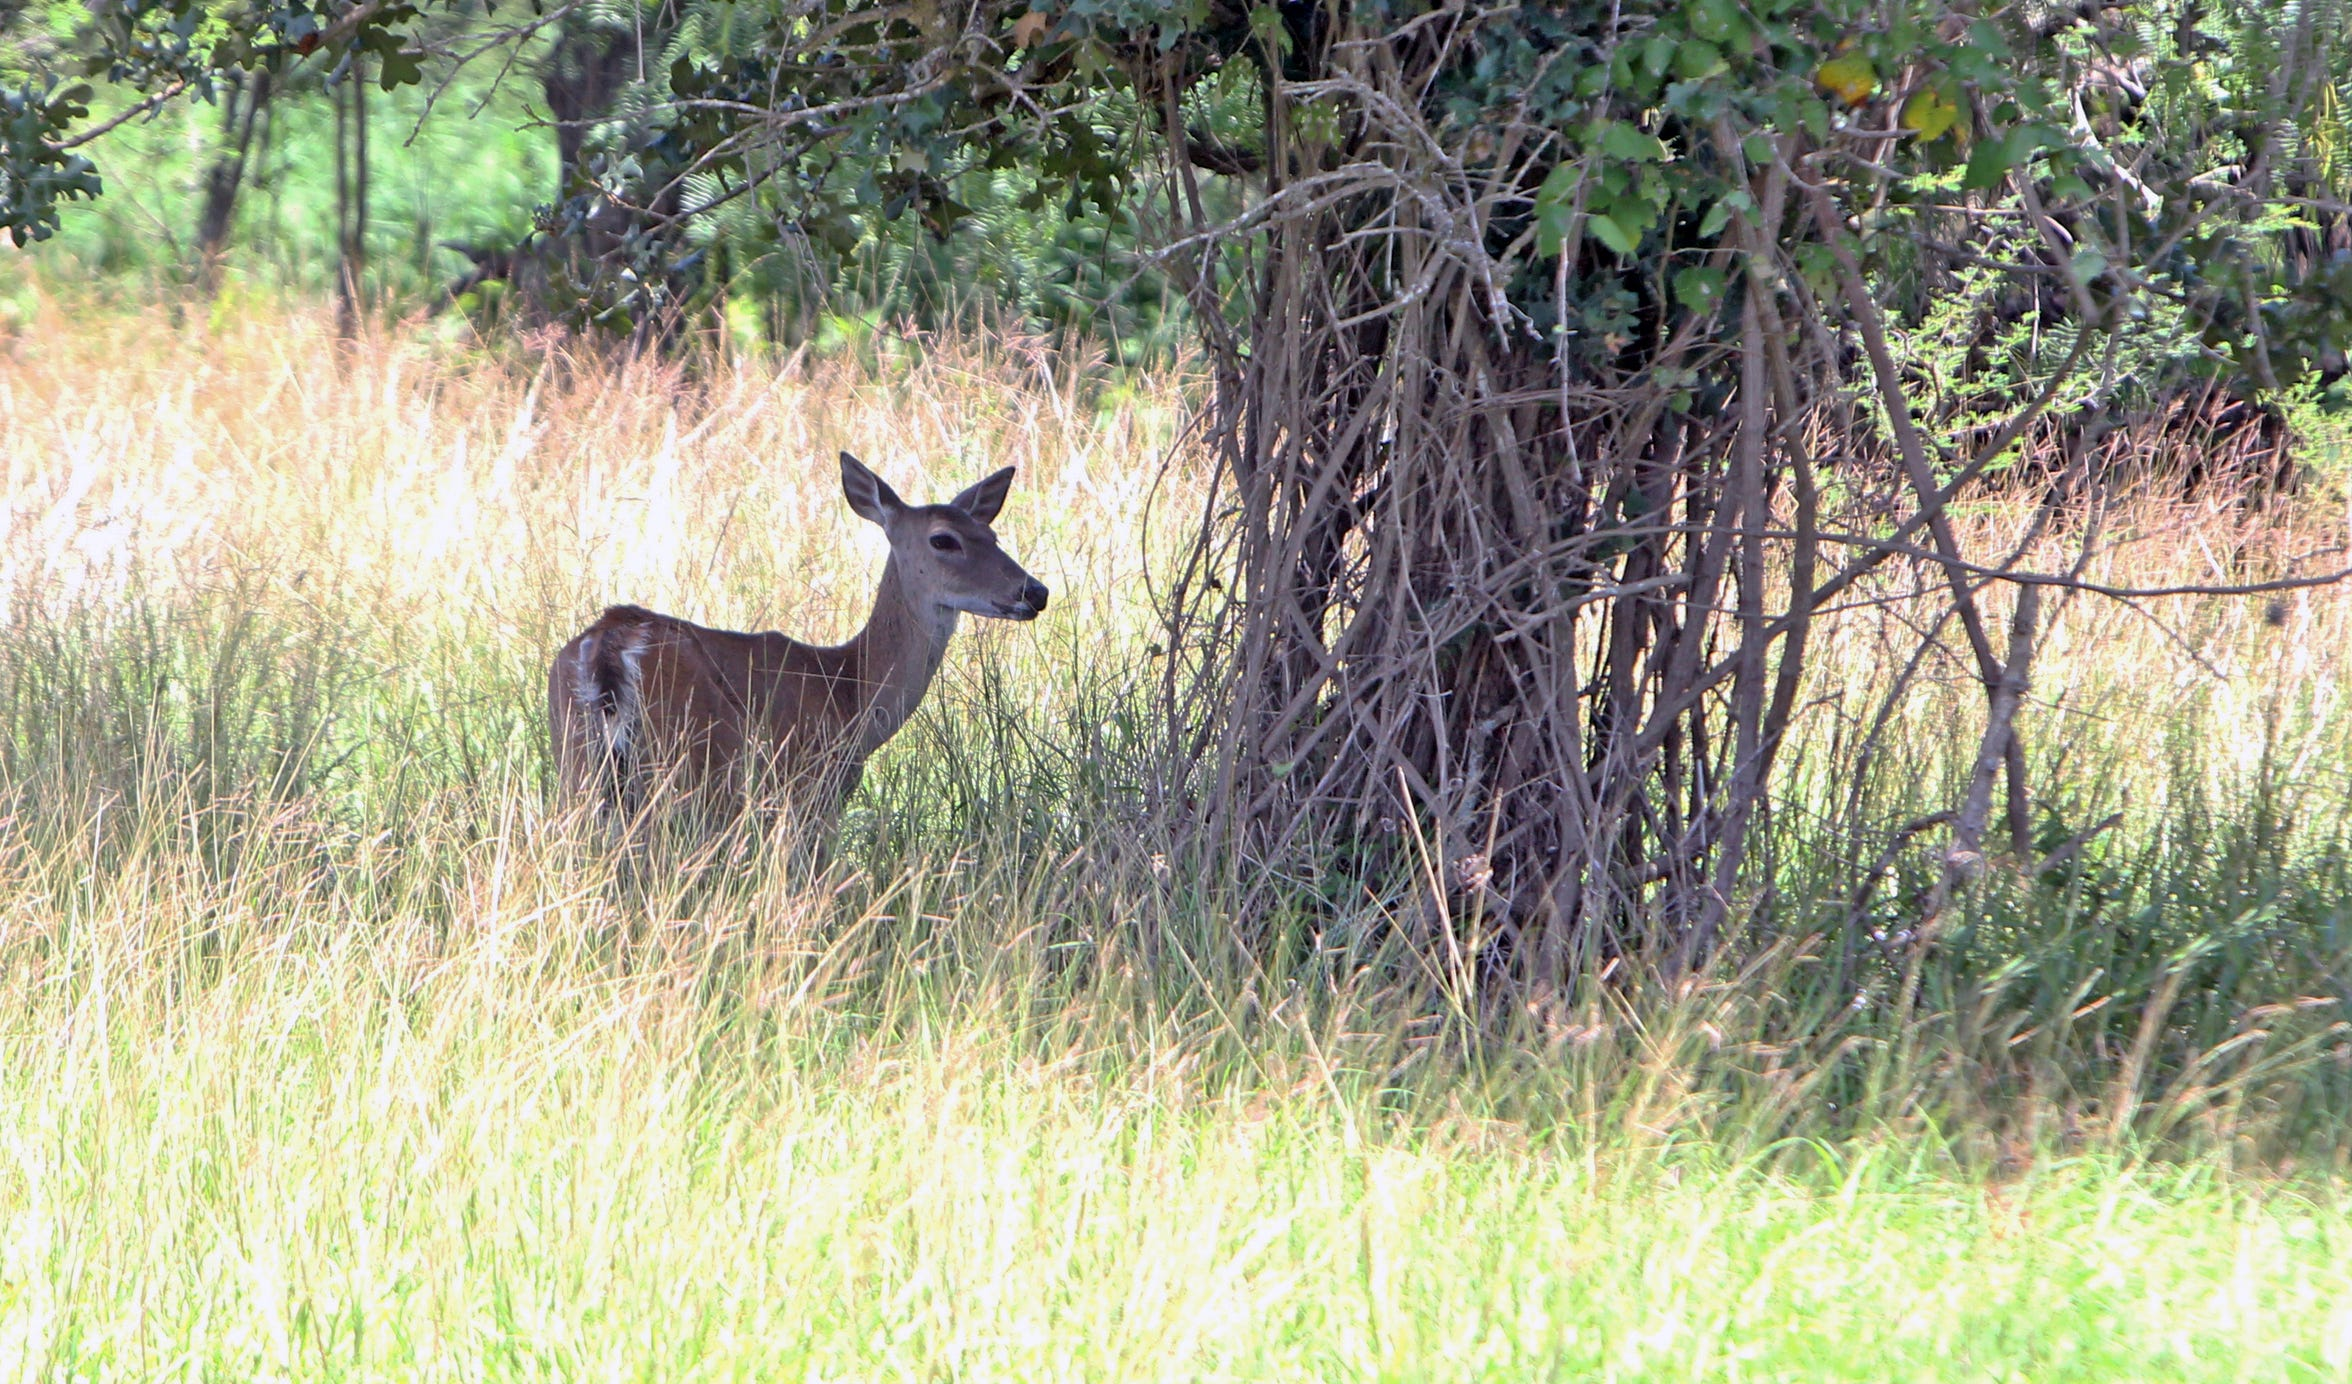 Game wardens near Lake Bob Sandlin recently issued citations to residents of a gated community  for taking of white-tailed deer during closed season, no hunting license, use of illegal archery equipment.